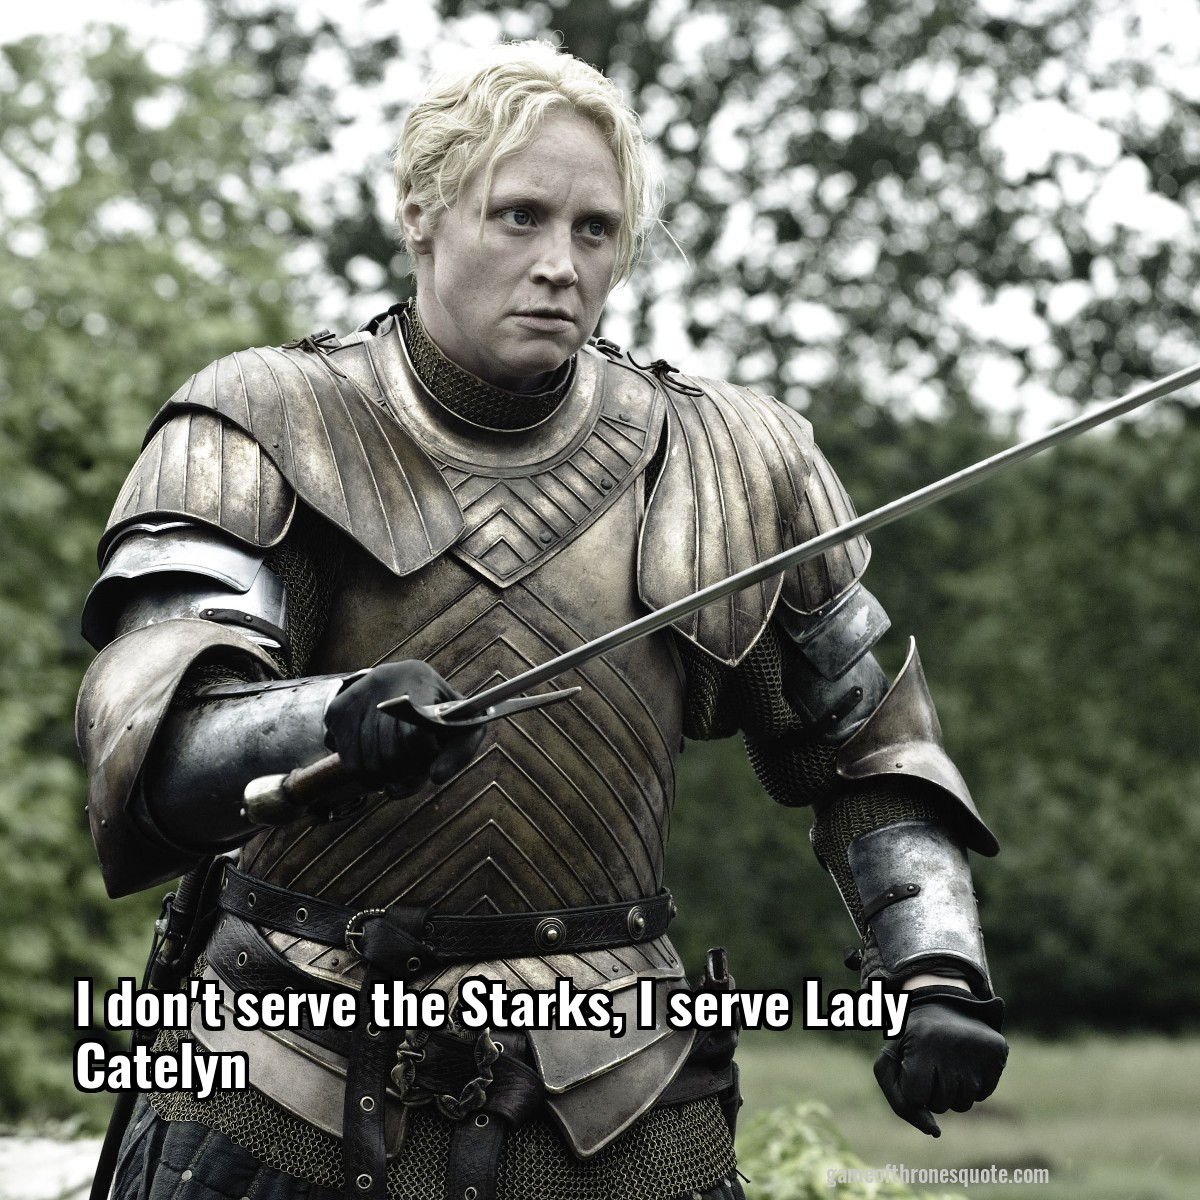 I don't serve the Starks, I serve Lady Catelyn